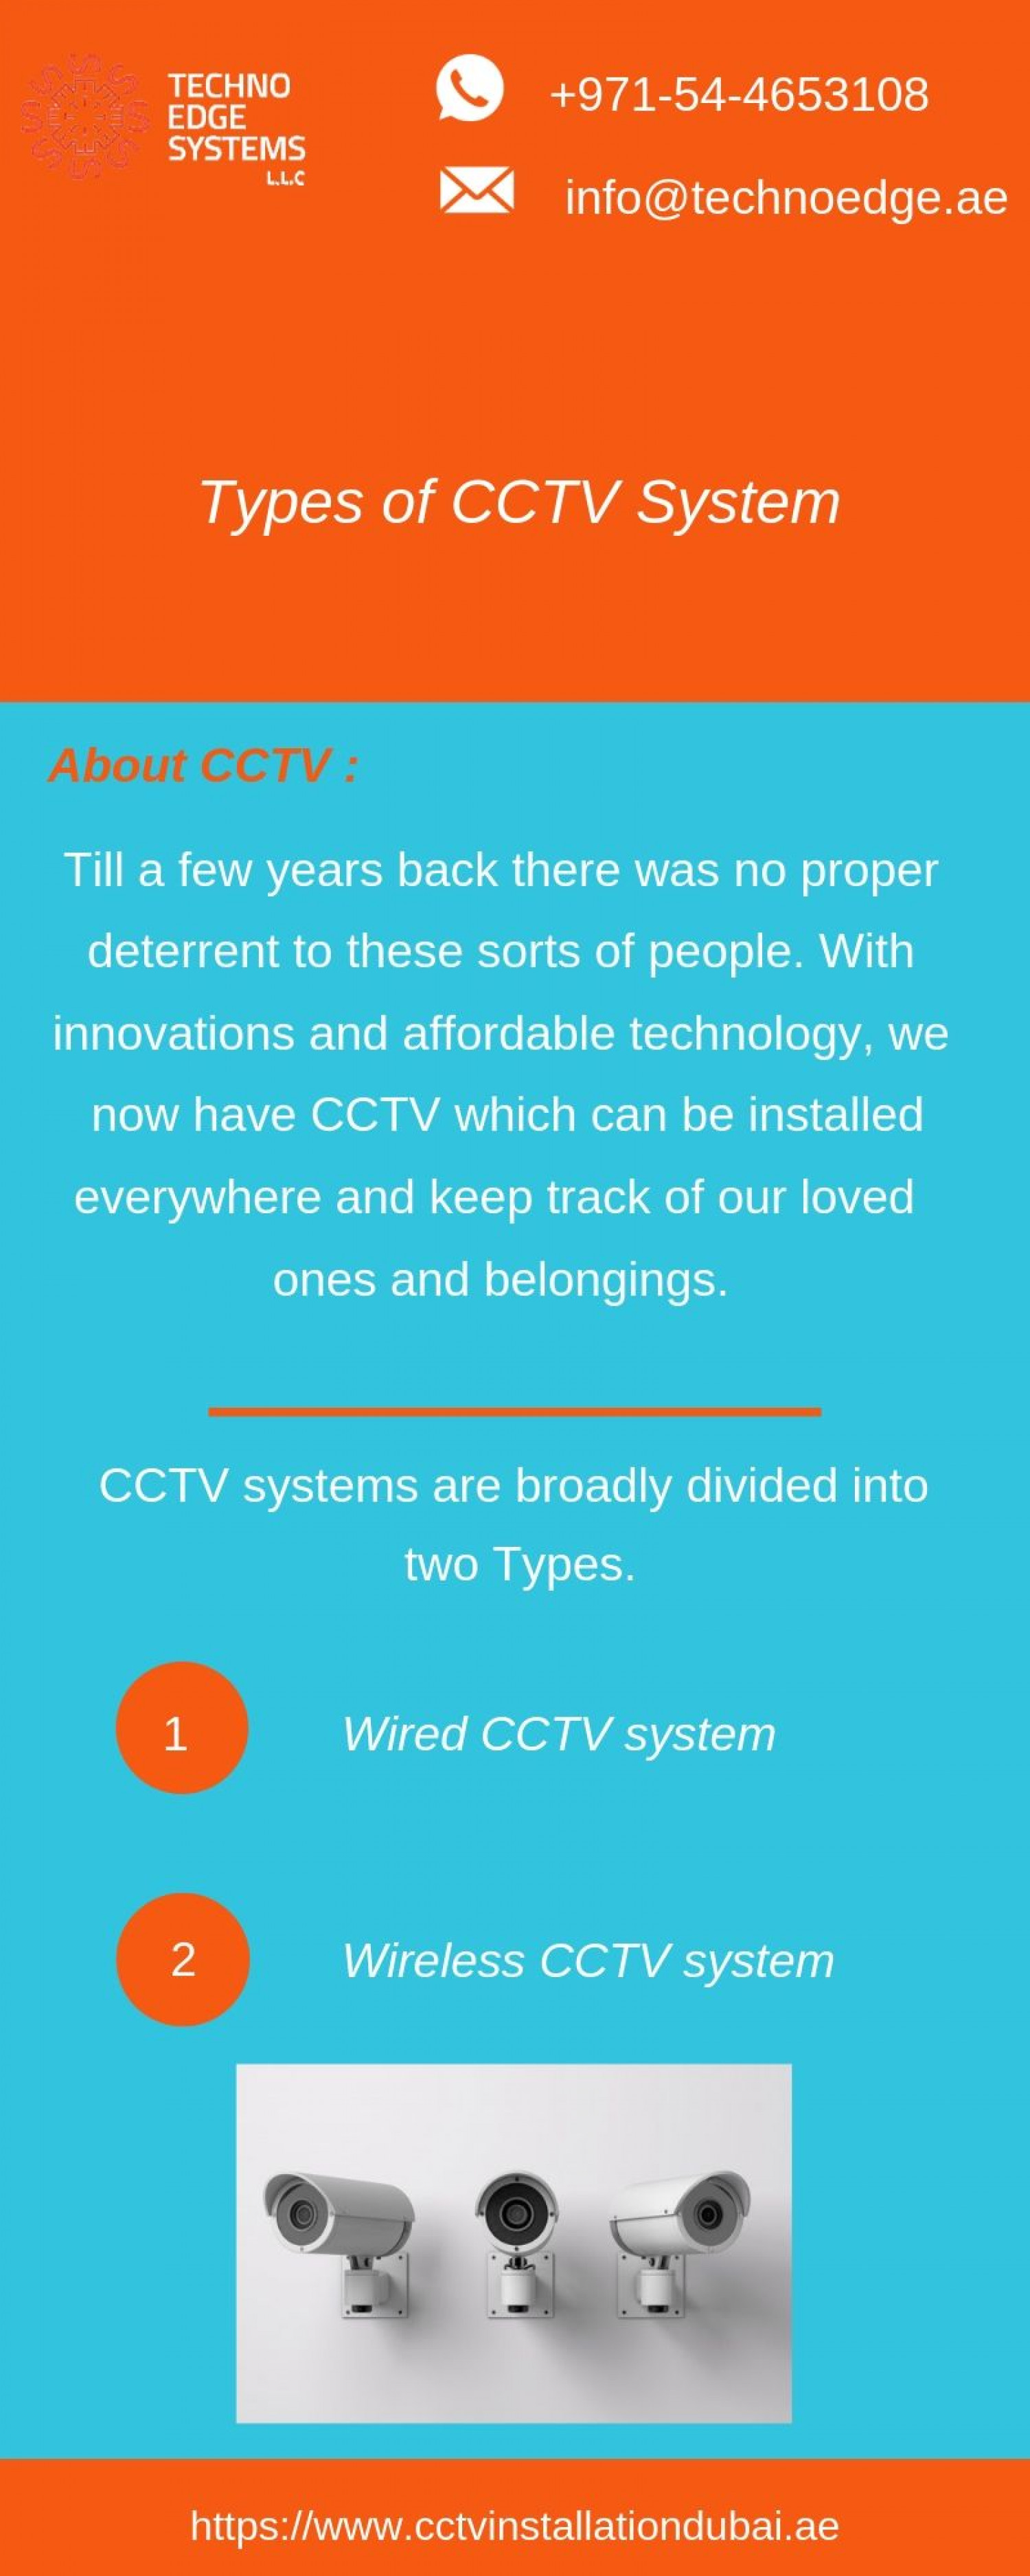 Types of CCTV System Infographic